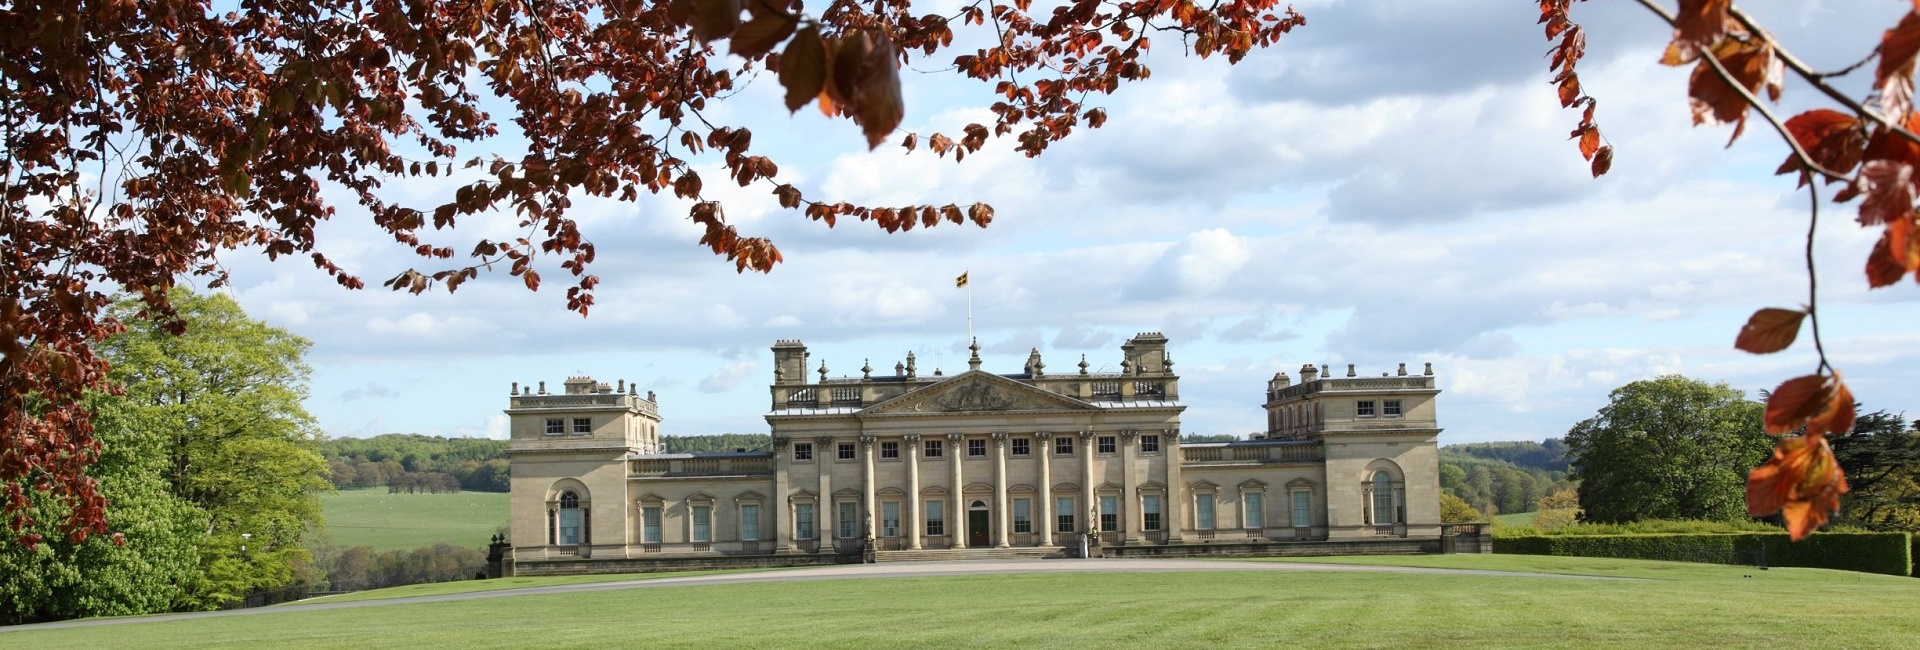 Harewood House from the North Front credit Simon Warner and Harewood House Trust